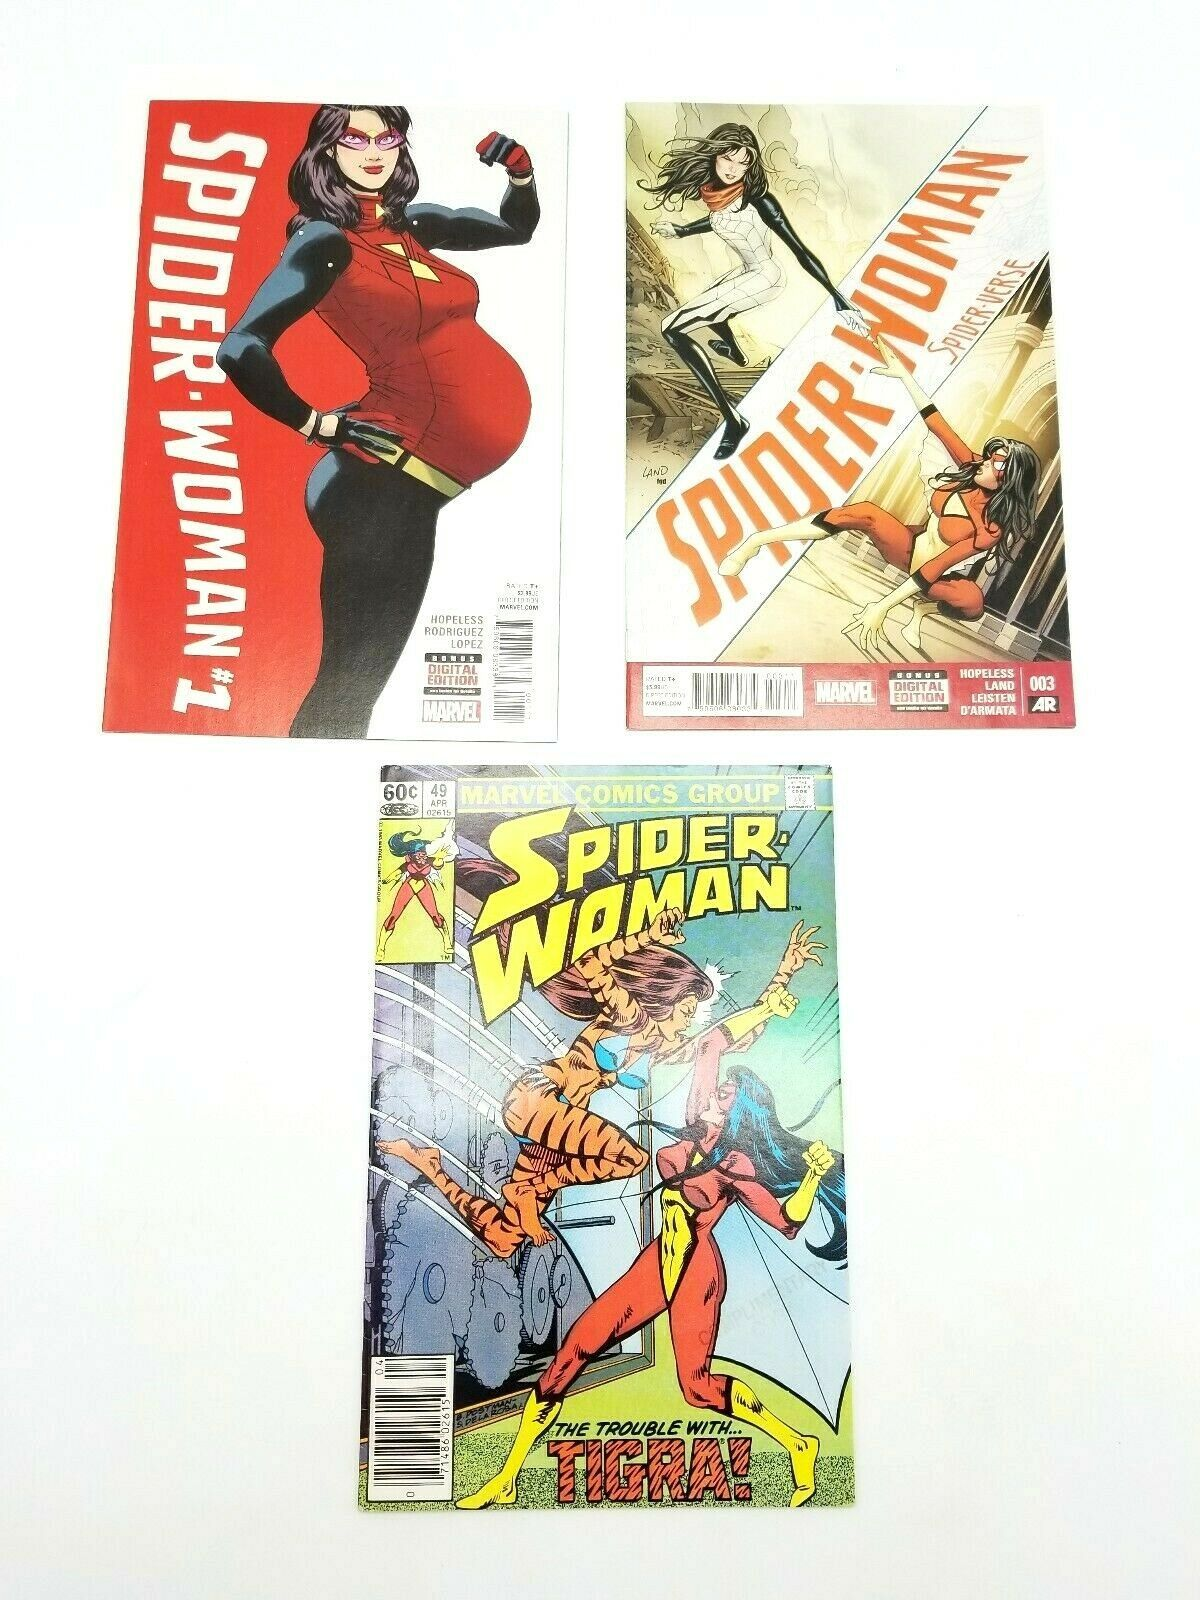 Spider Woman #1 Vol 6 #5 Vol 5 & 49 Vol 1 Marvel Comic Book Lot of 3